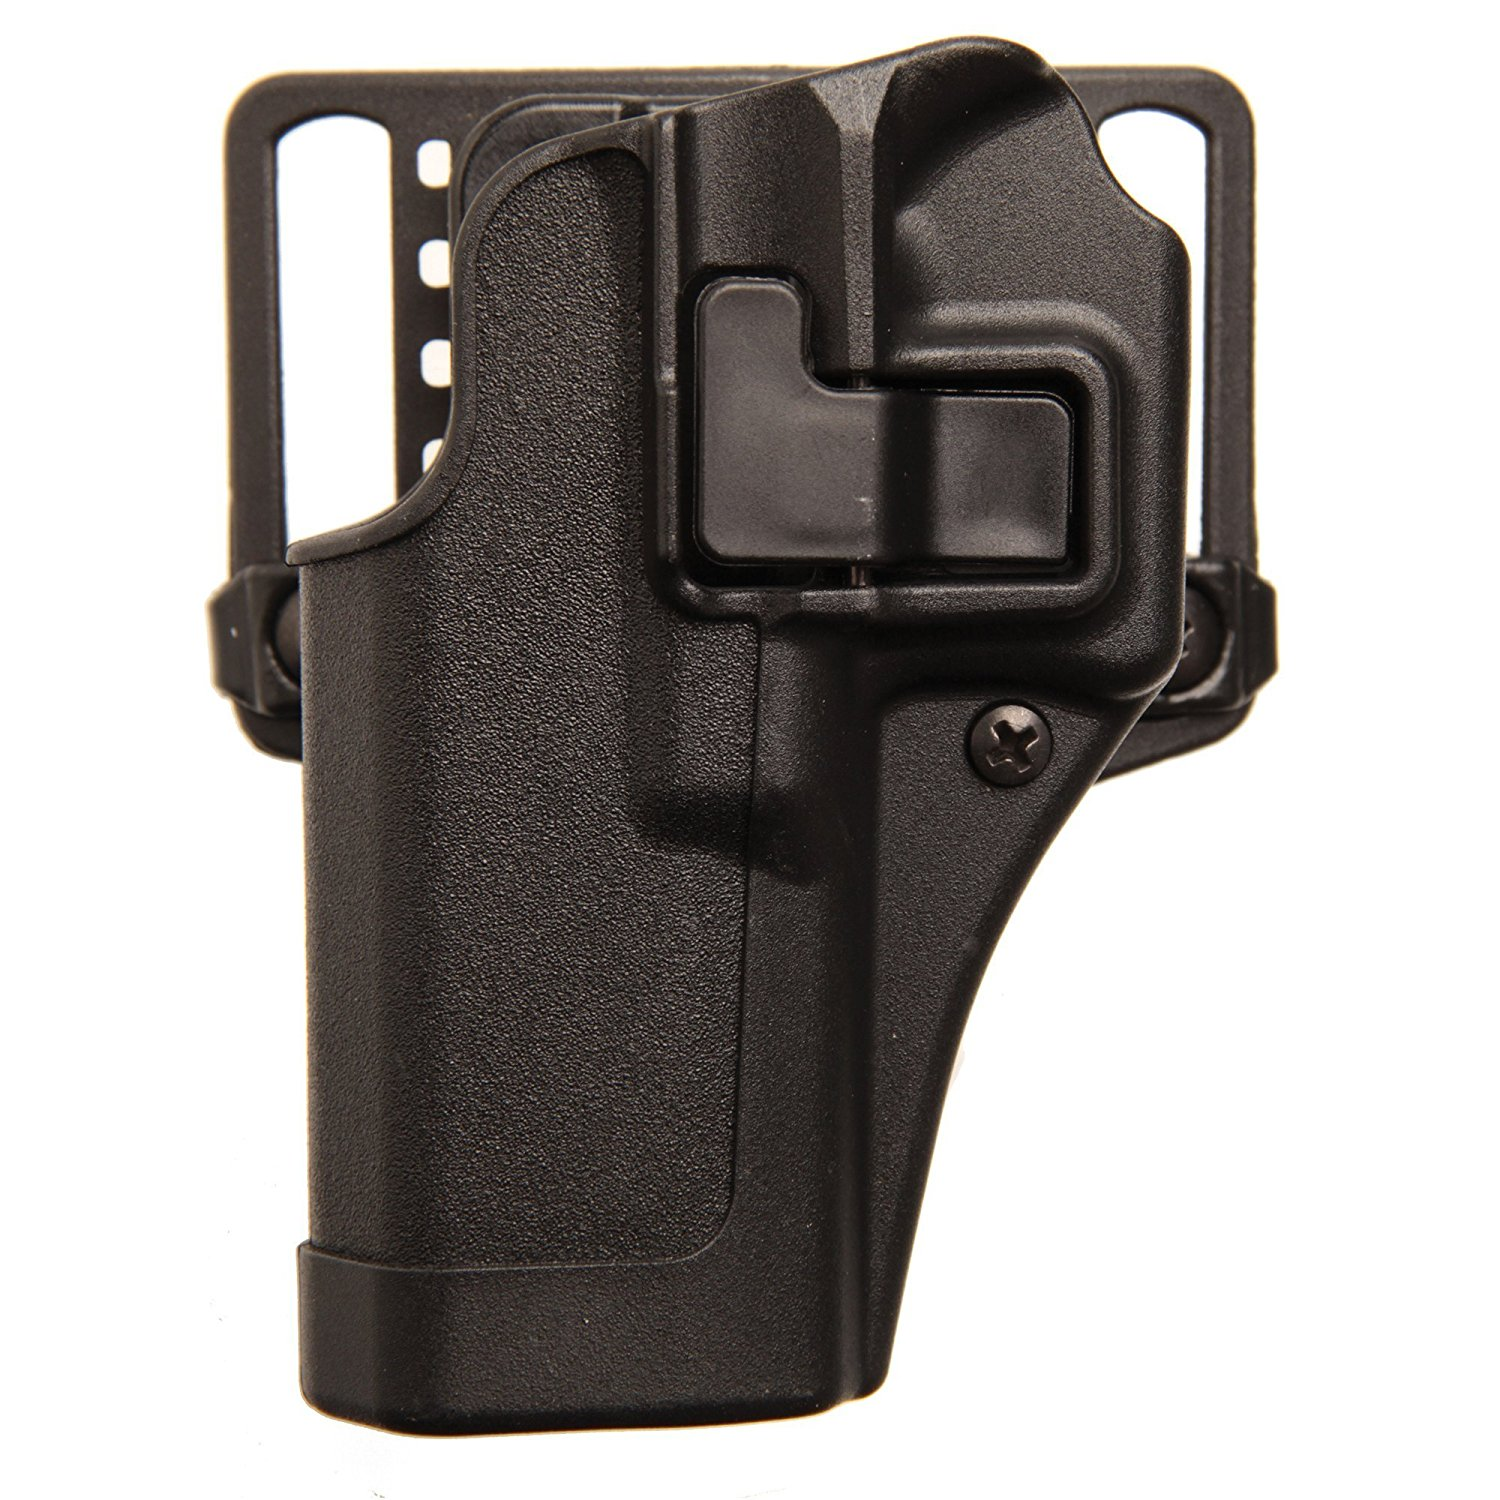 SERPA Concealment Holster - Matte Finish, Size 07, Right ...